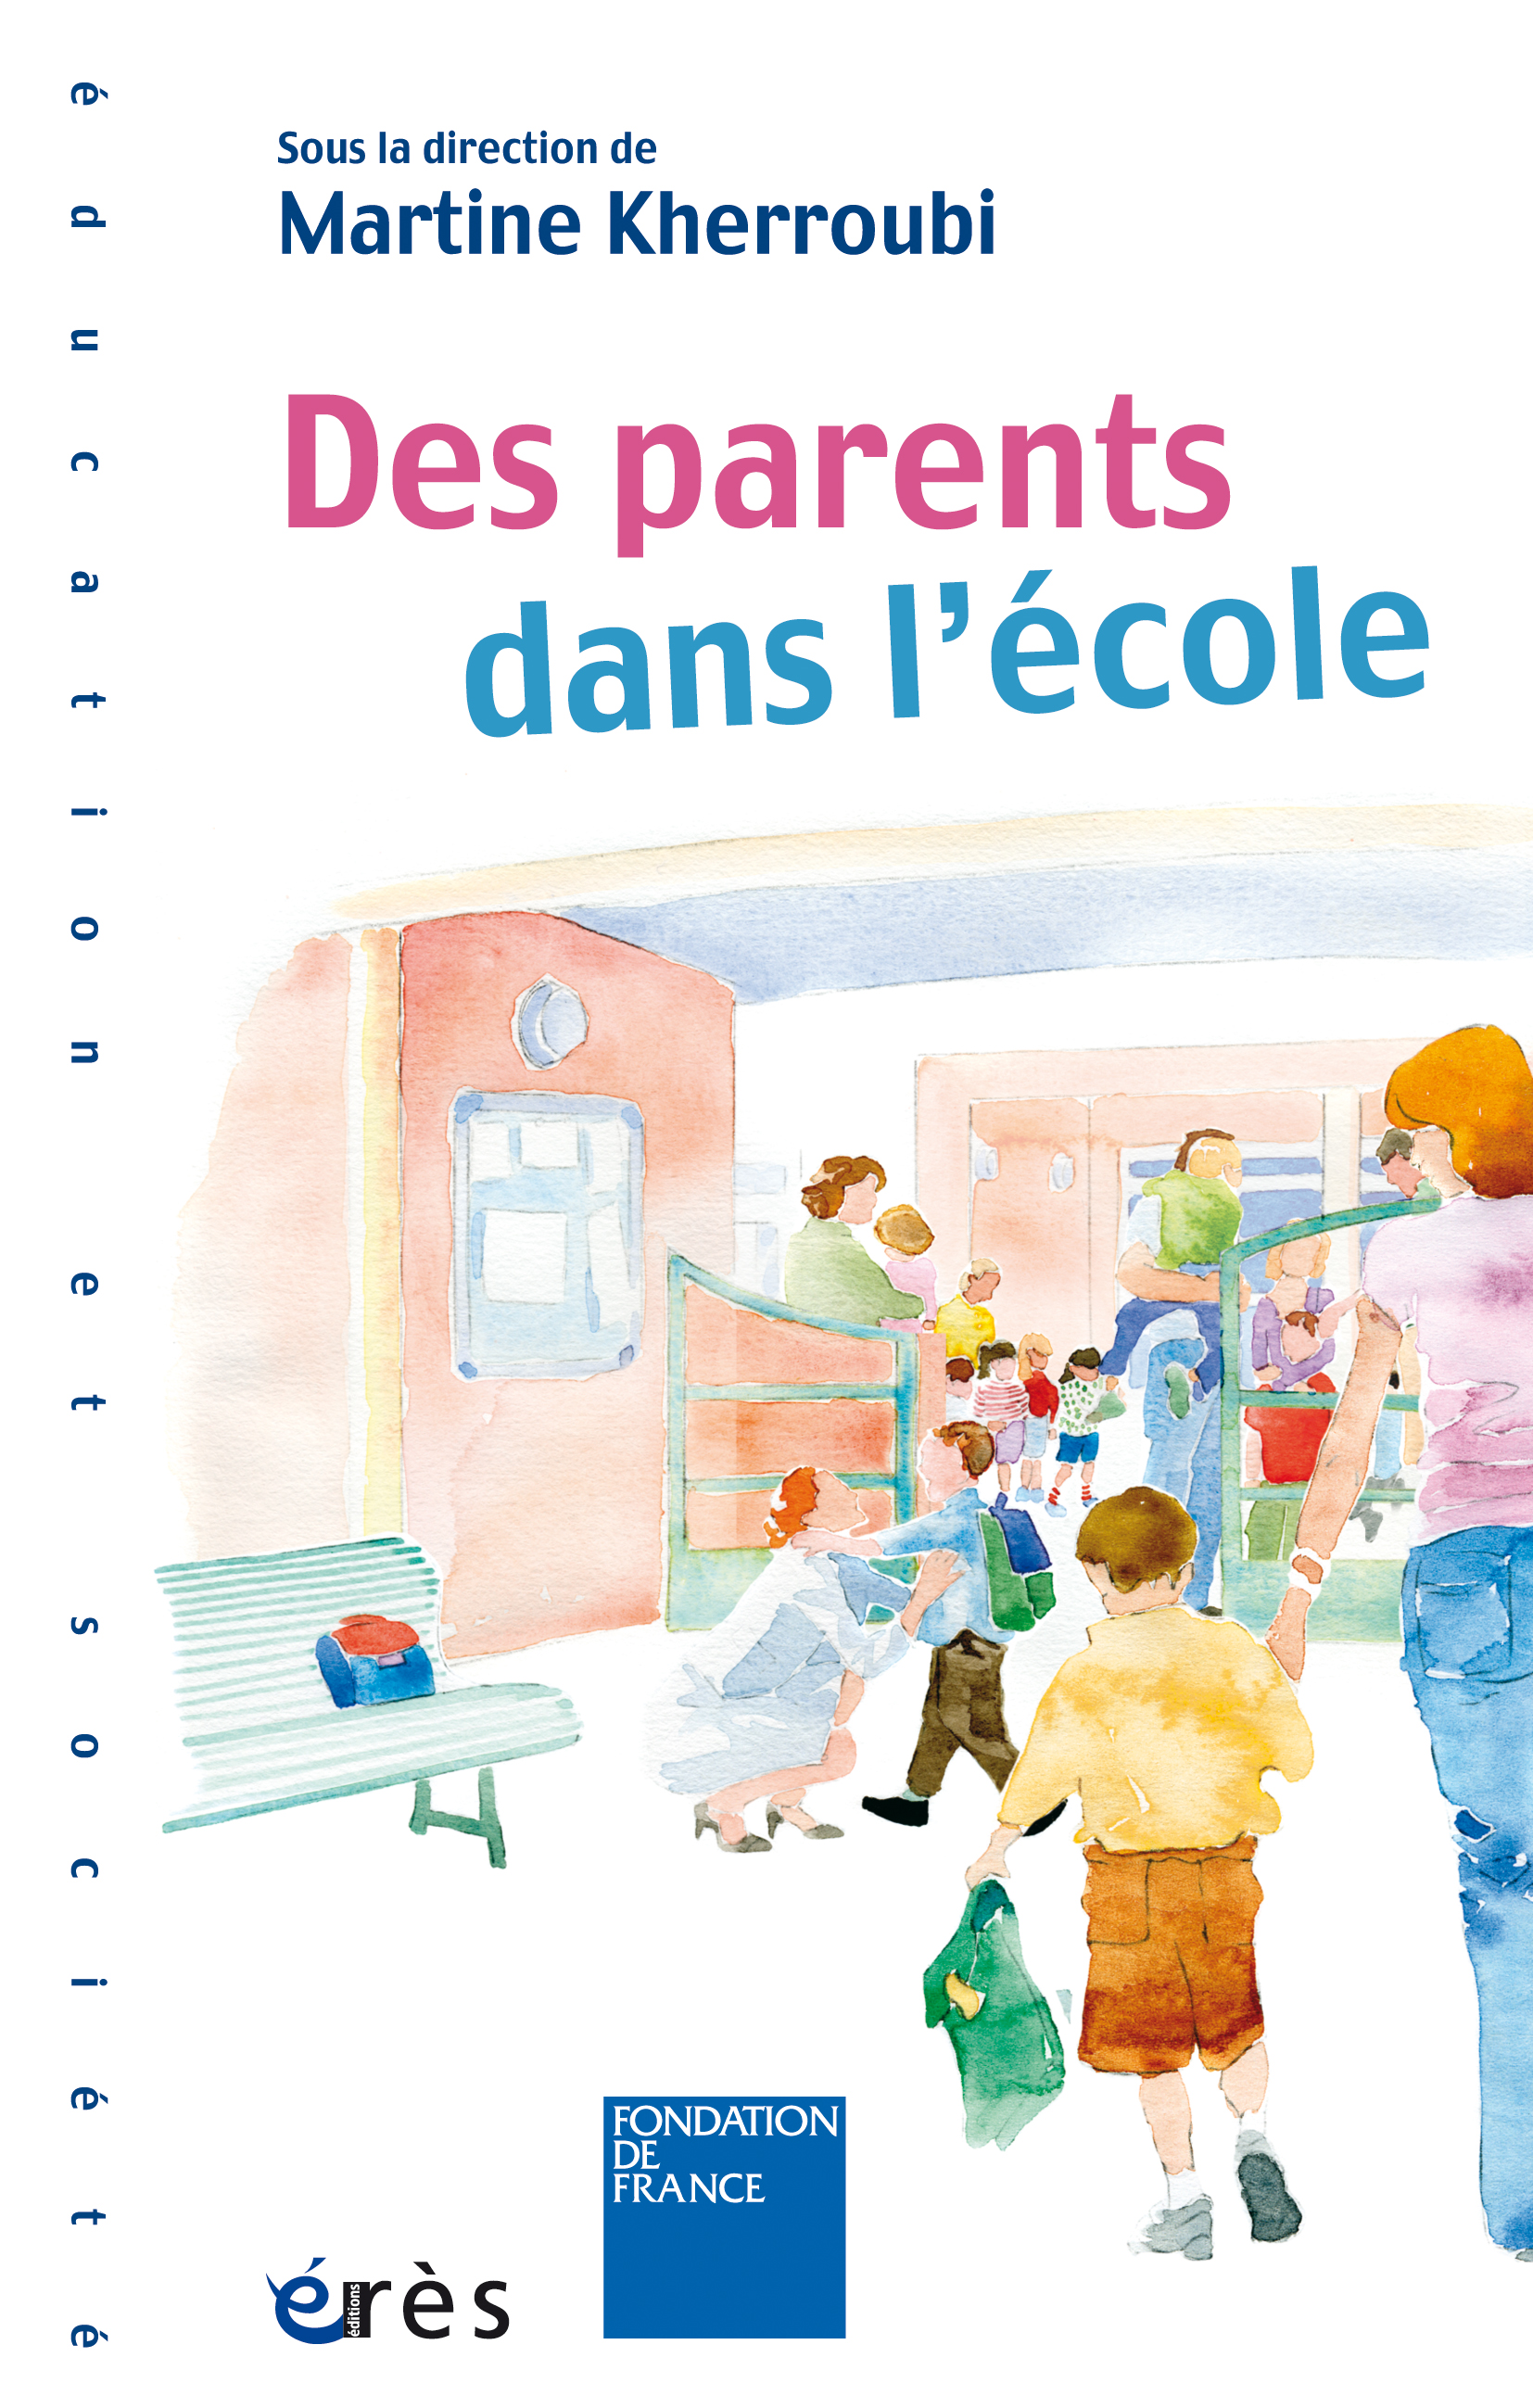 Devenirs Enfants Des Parents Implications Scolaires Cairn 2 Et info 4a1Pqw